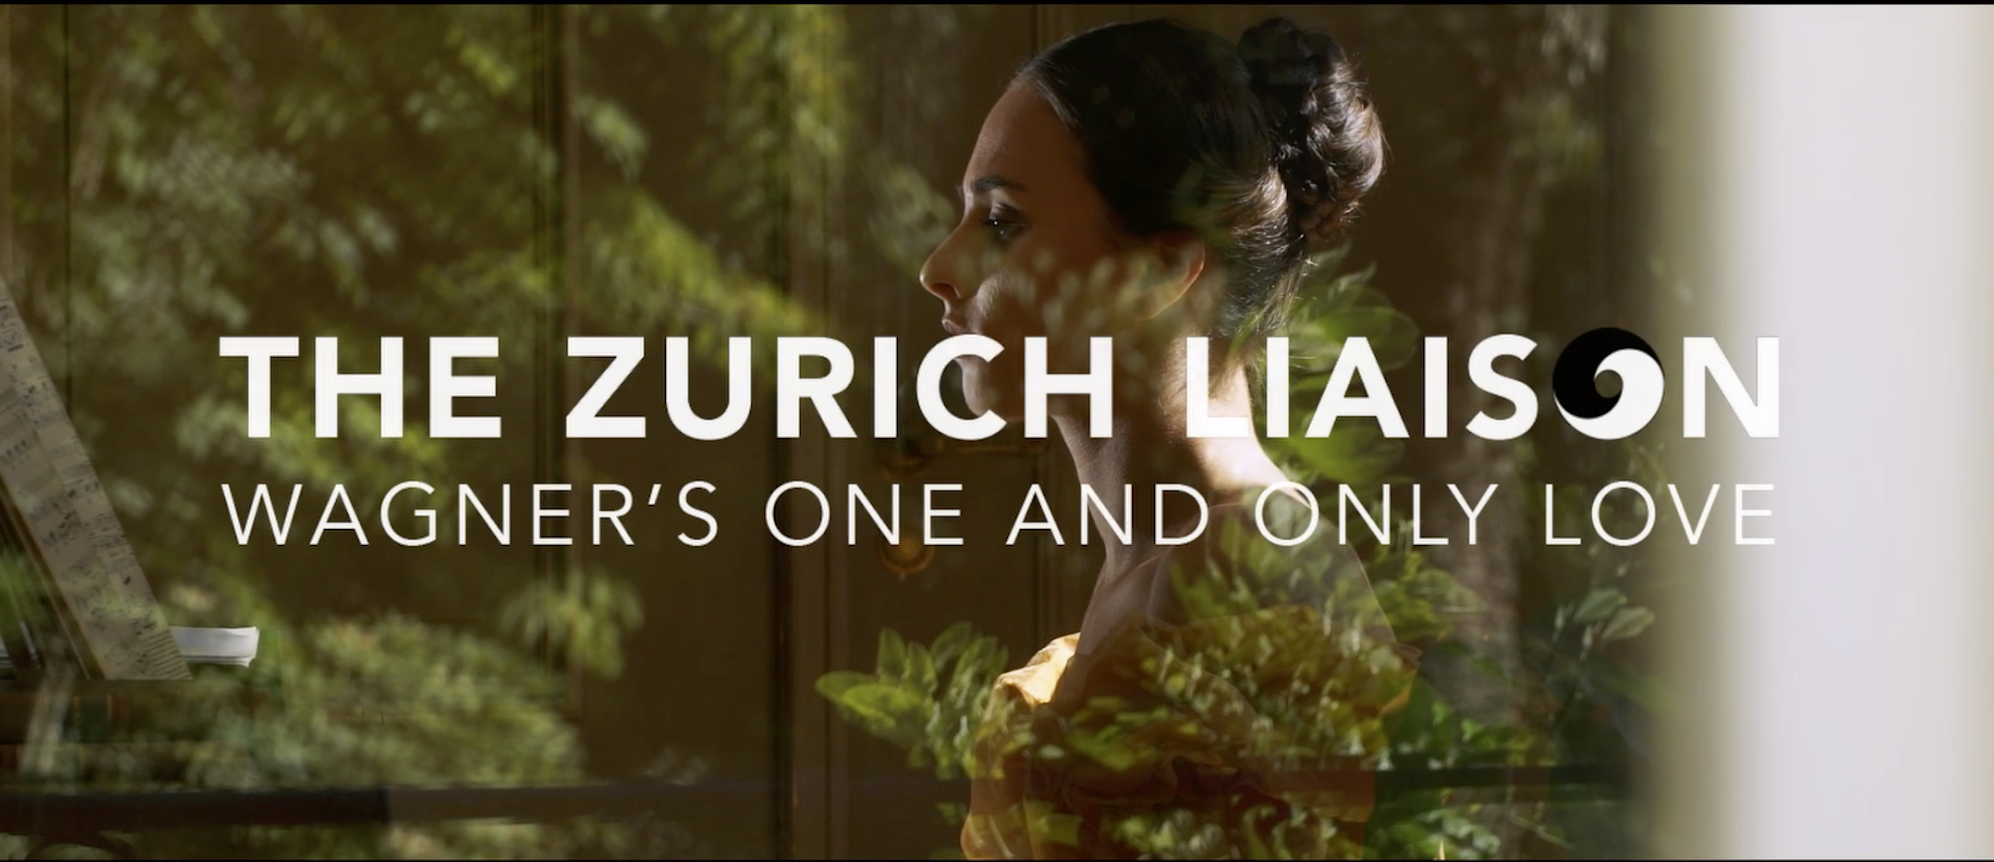 The Zurich Liaison SyQuali